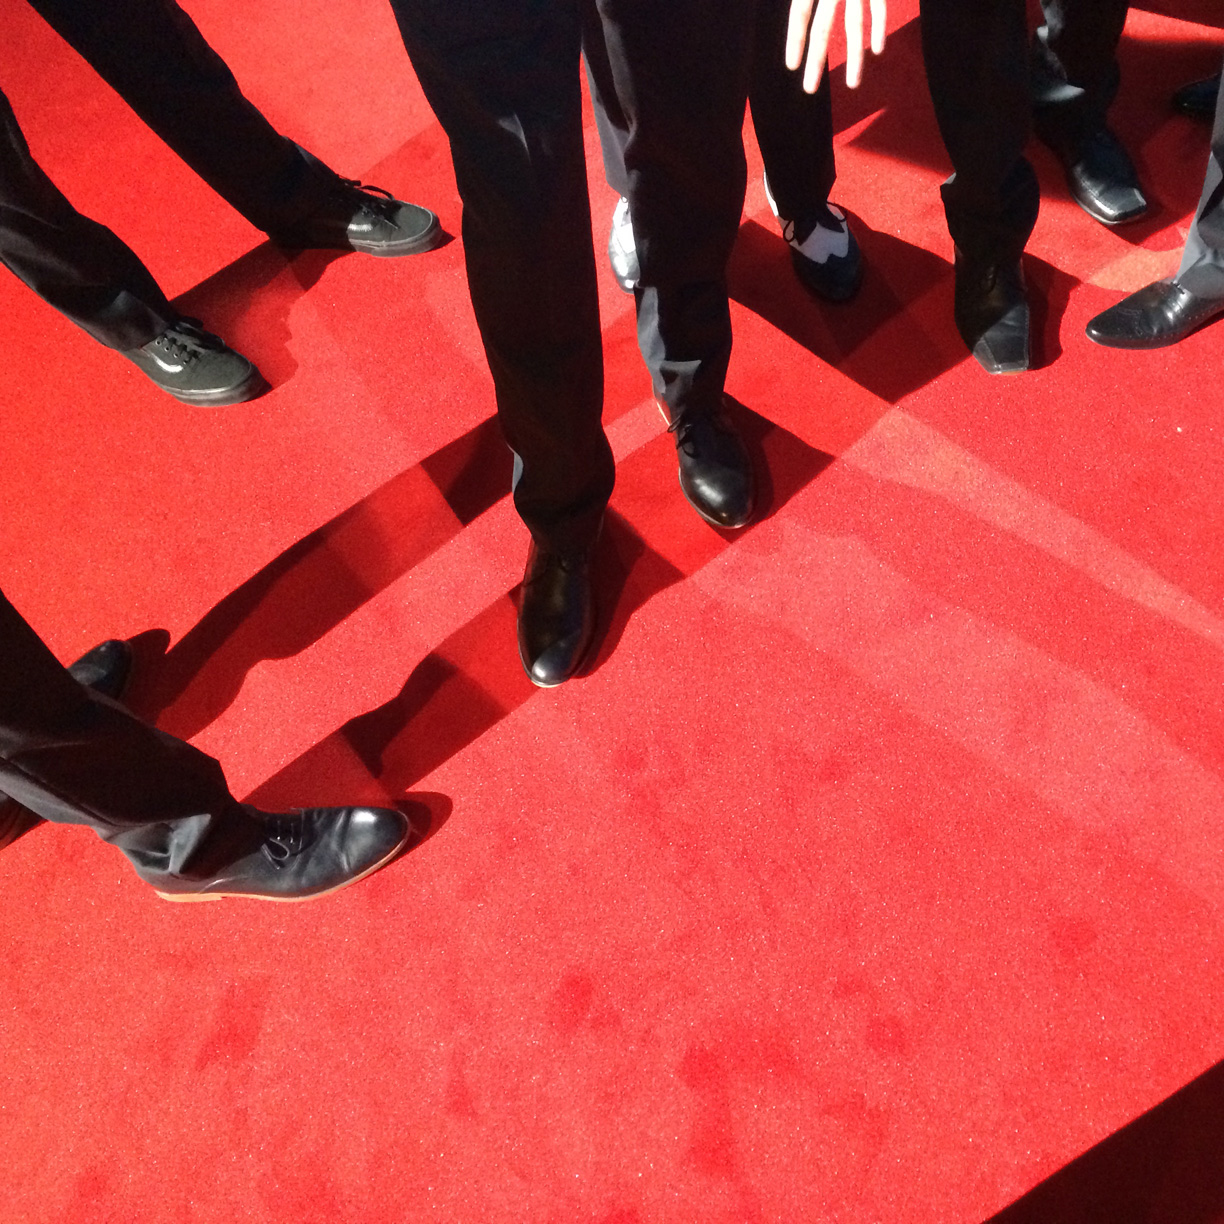 The red carpets at the BAFTAs